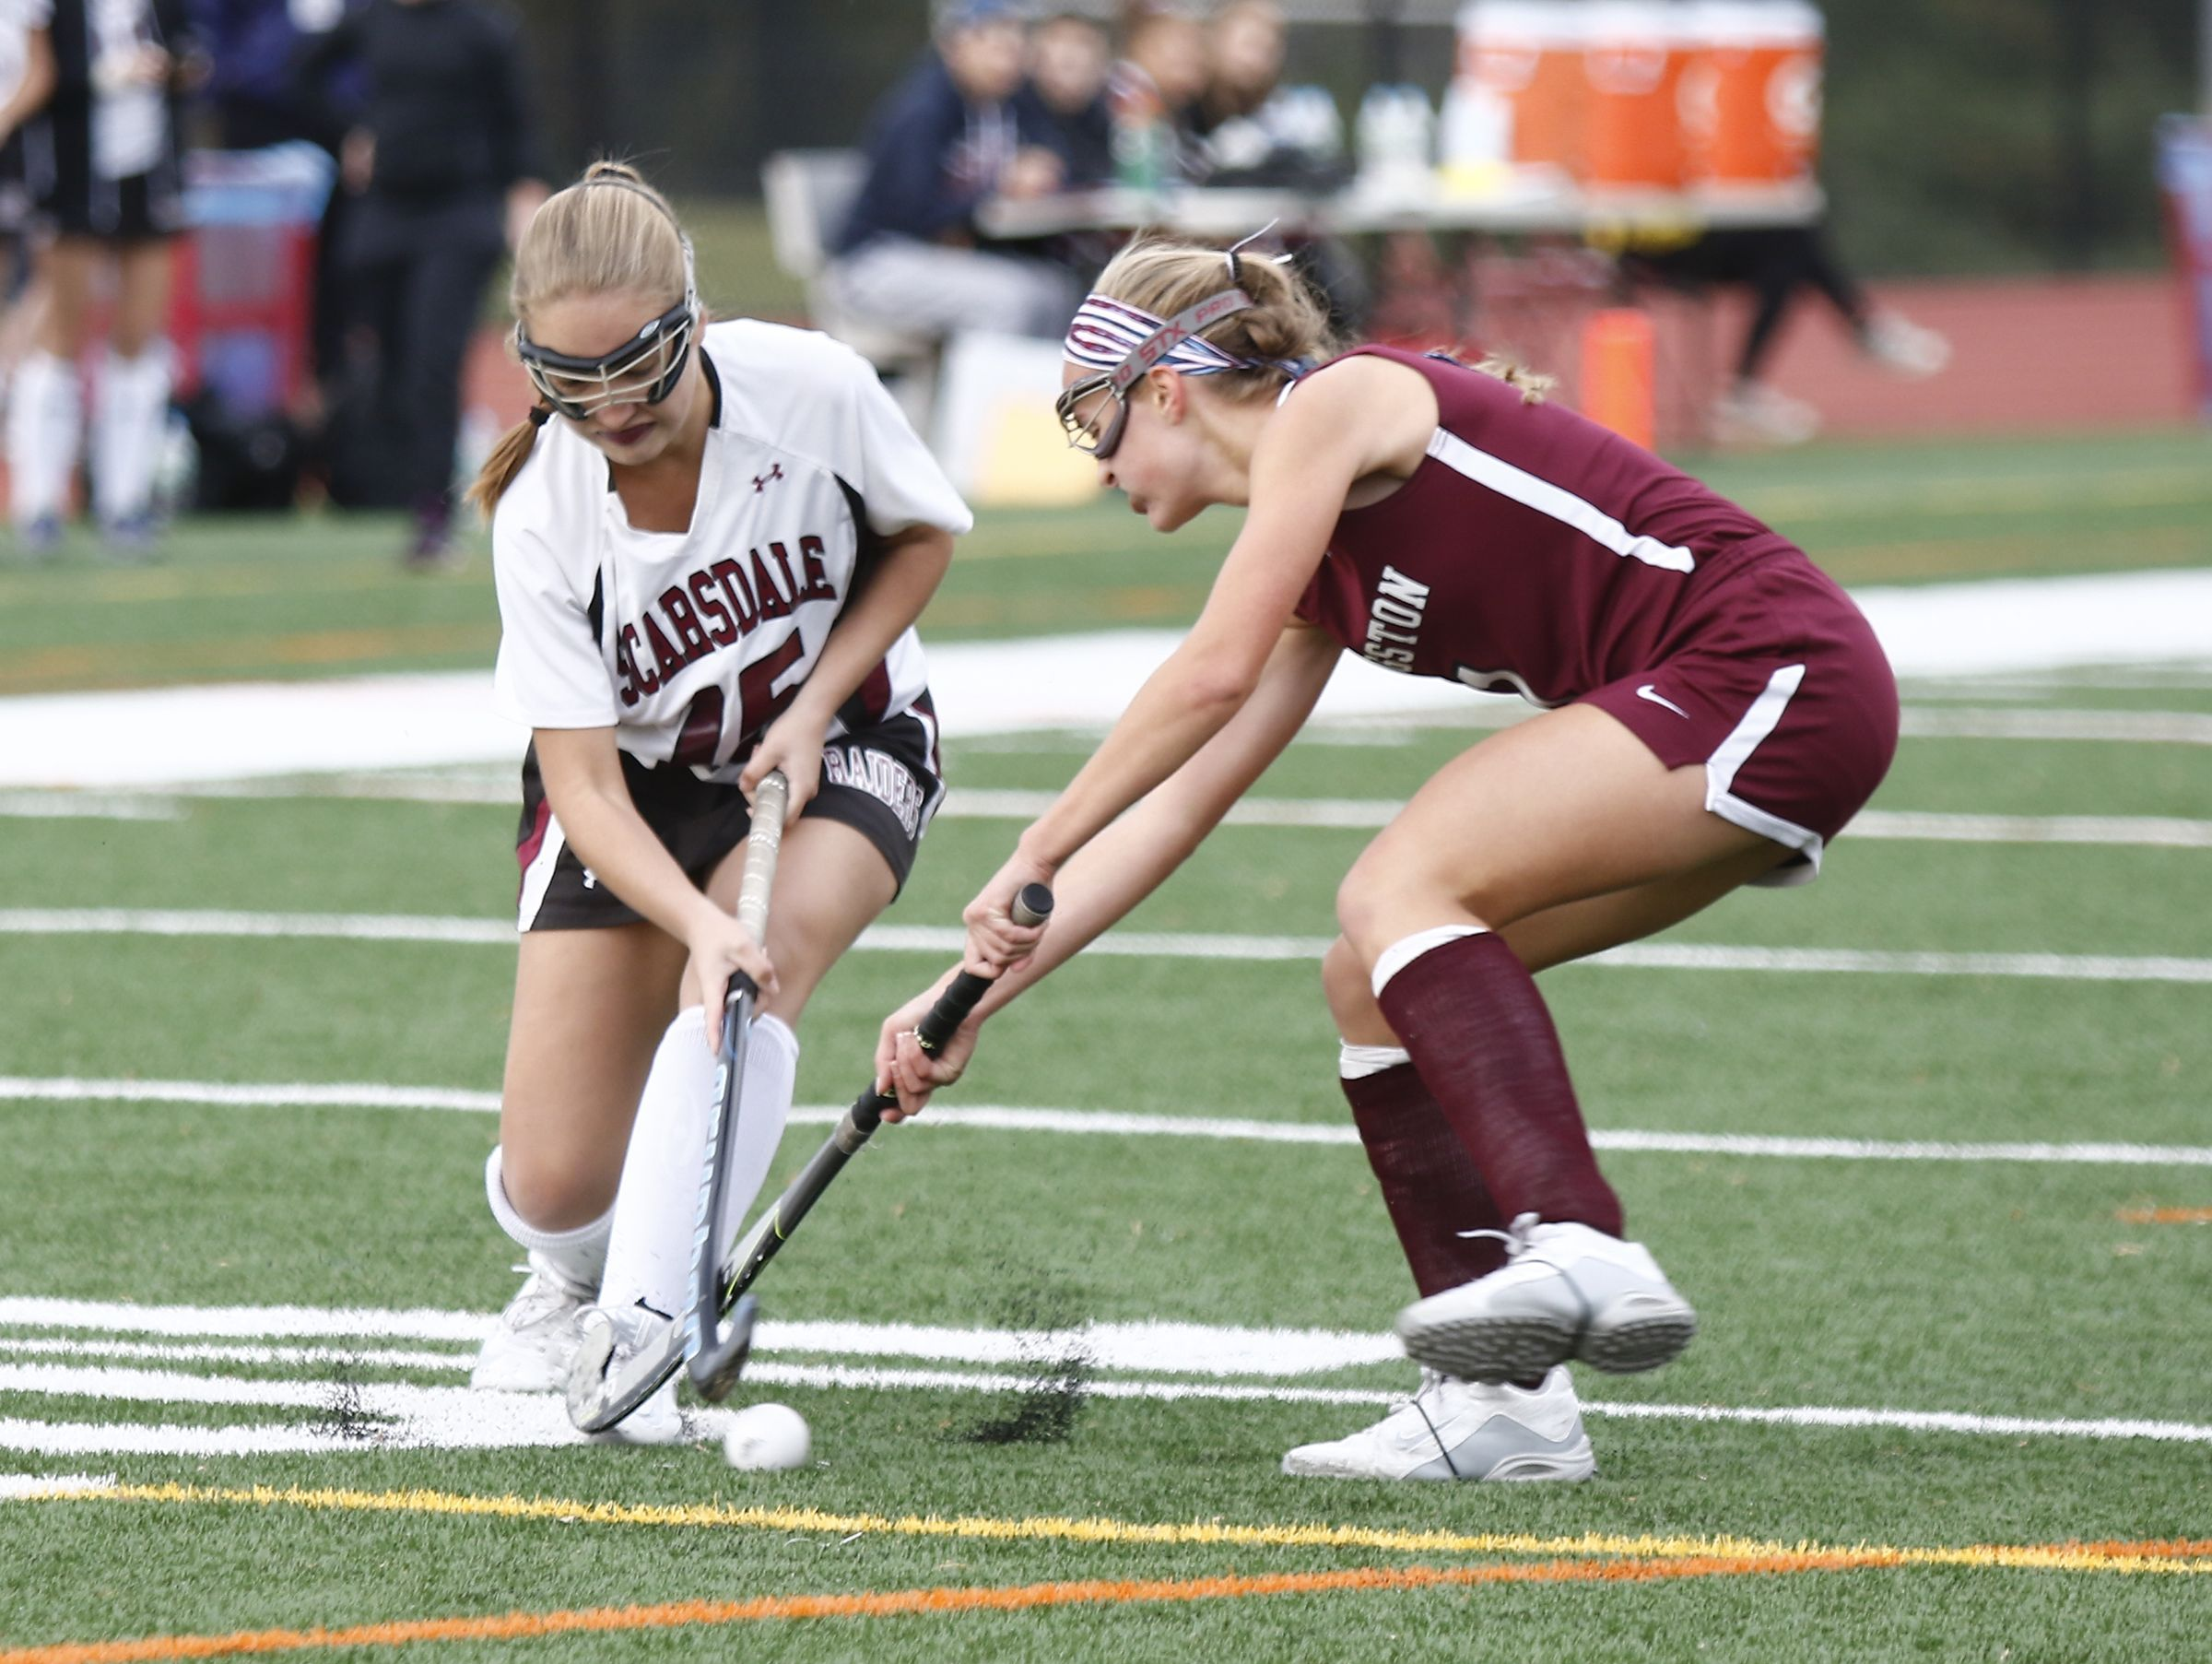 Scarsdale's Paige Panessa (15) works past a Kingston defender during their 5-0 win in the Class A regional championship field hockey game at Valhalla High School on Saturday, November 5, 2016.